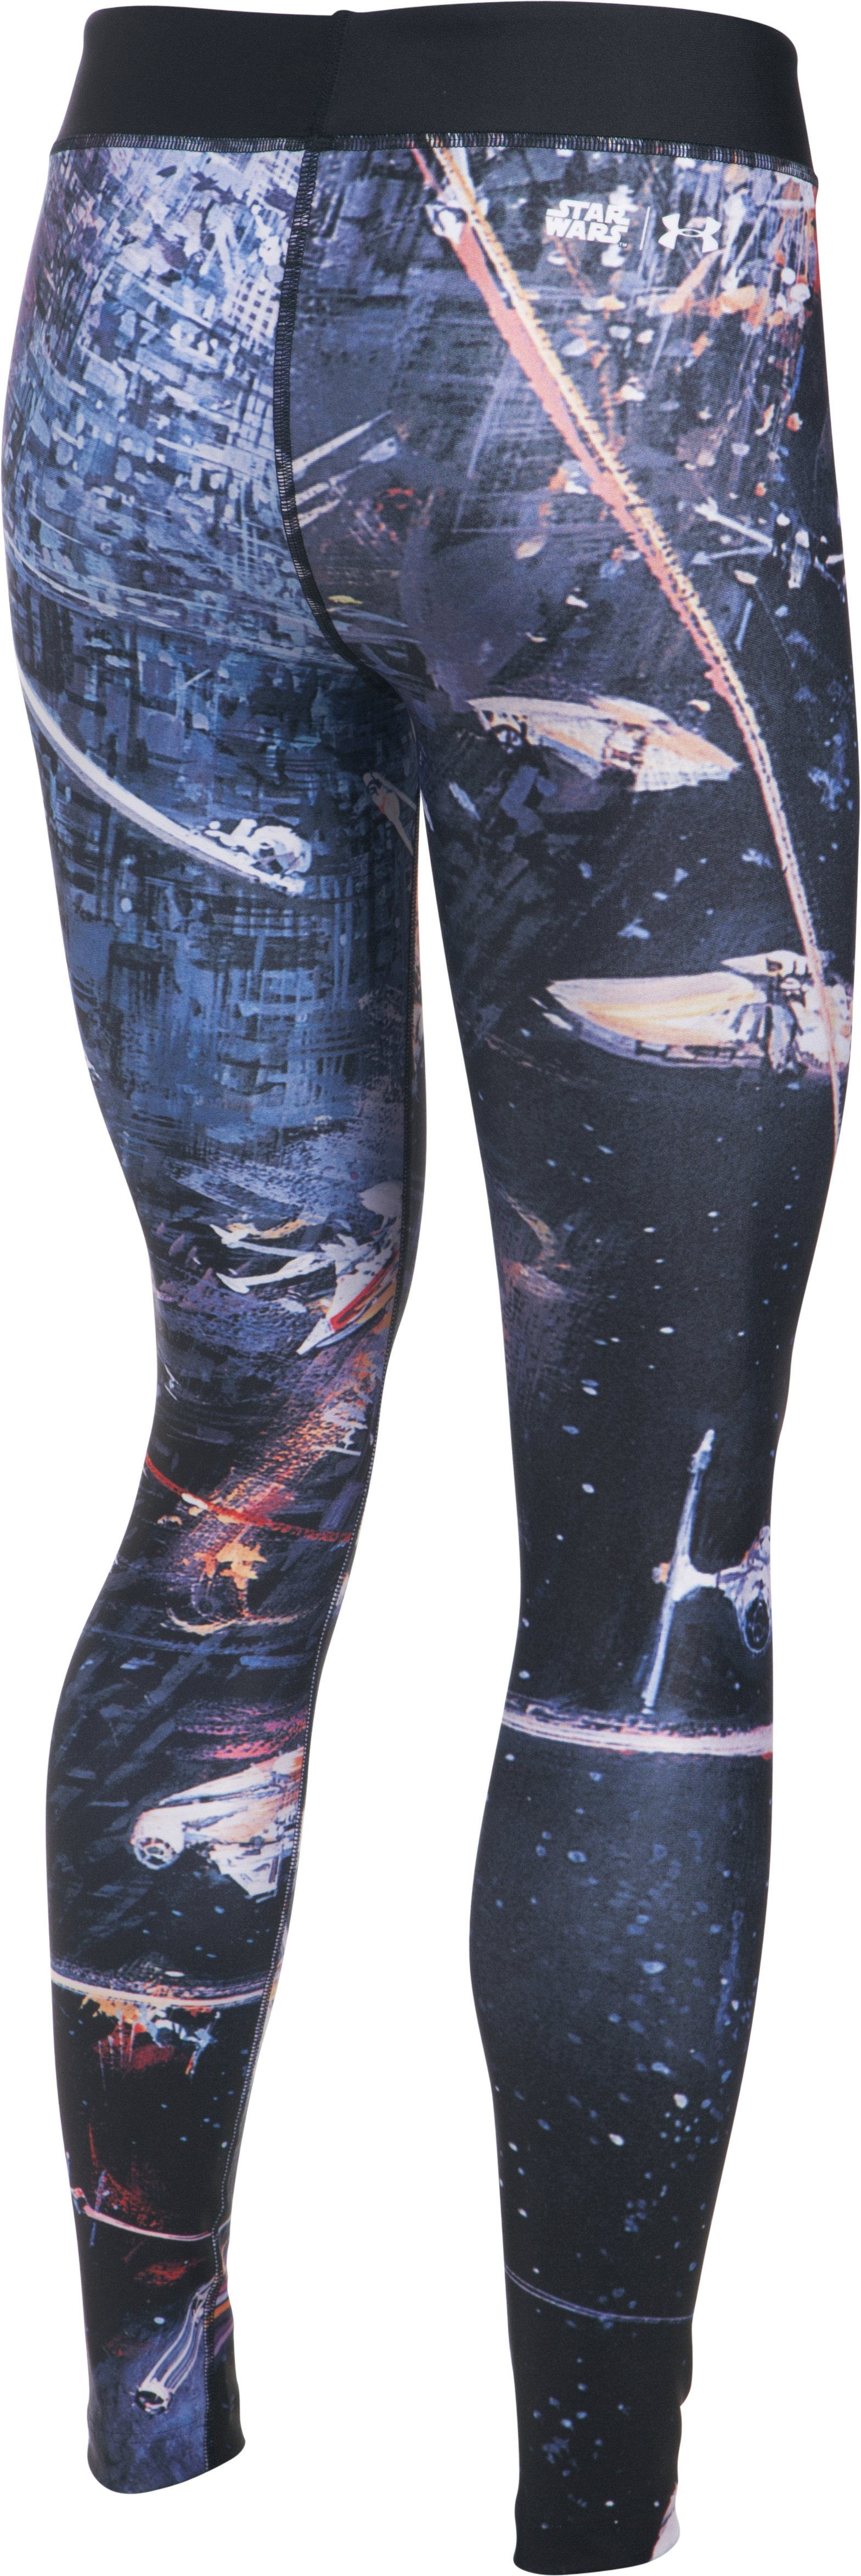 Women's Star Wars Fight Scene Leggings, Black , undefined